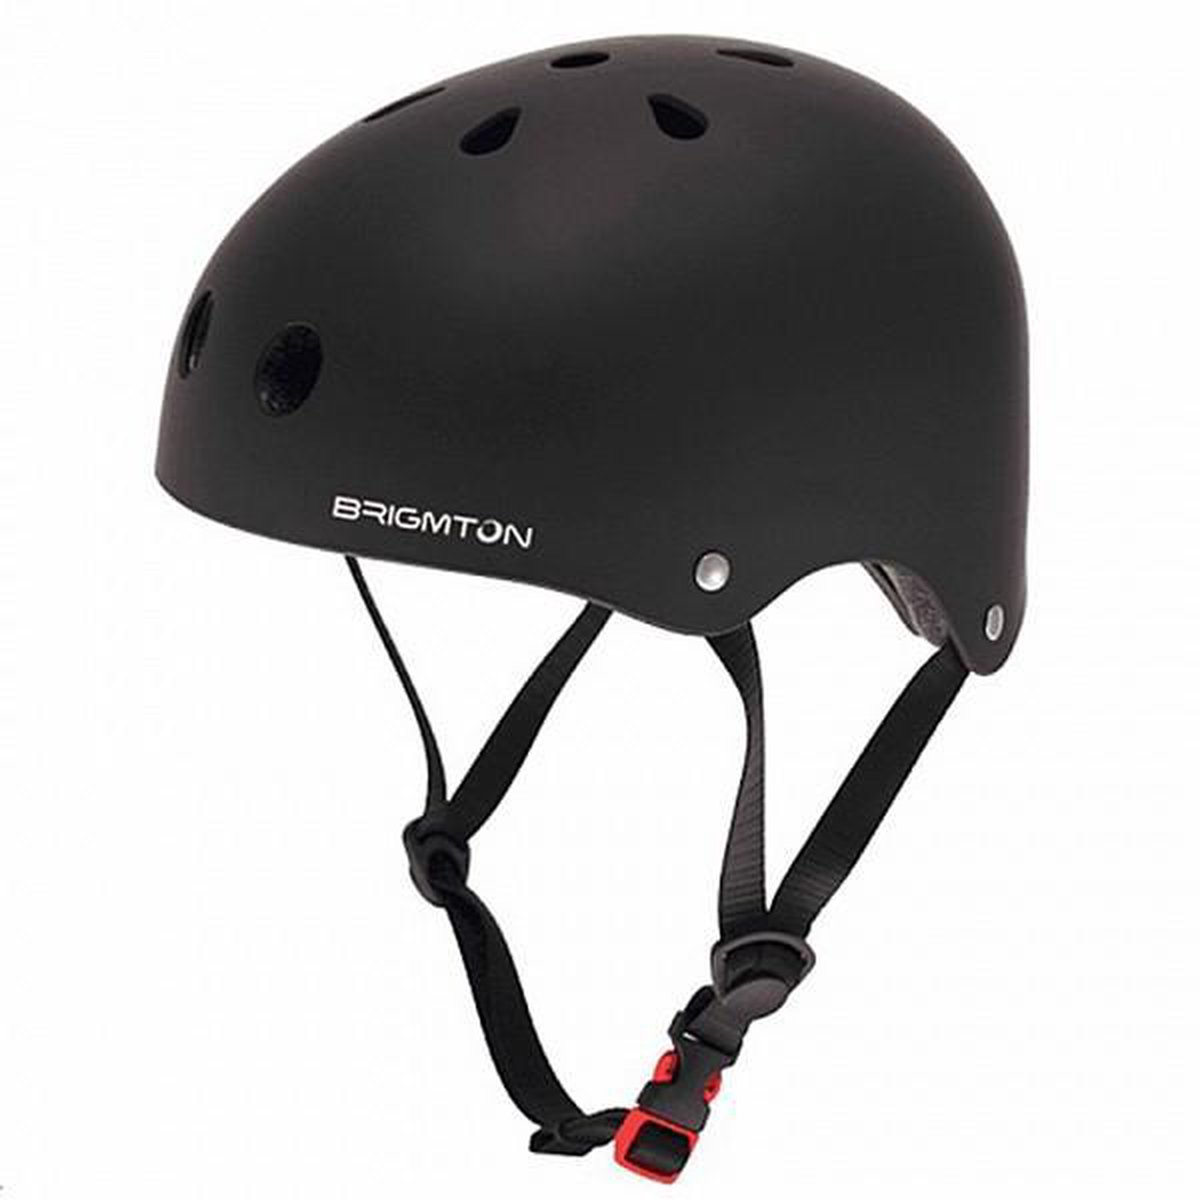 Cover For Electric Scooter Brigmton Bh-1